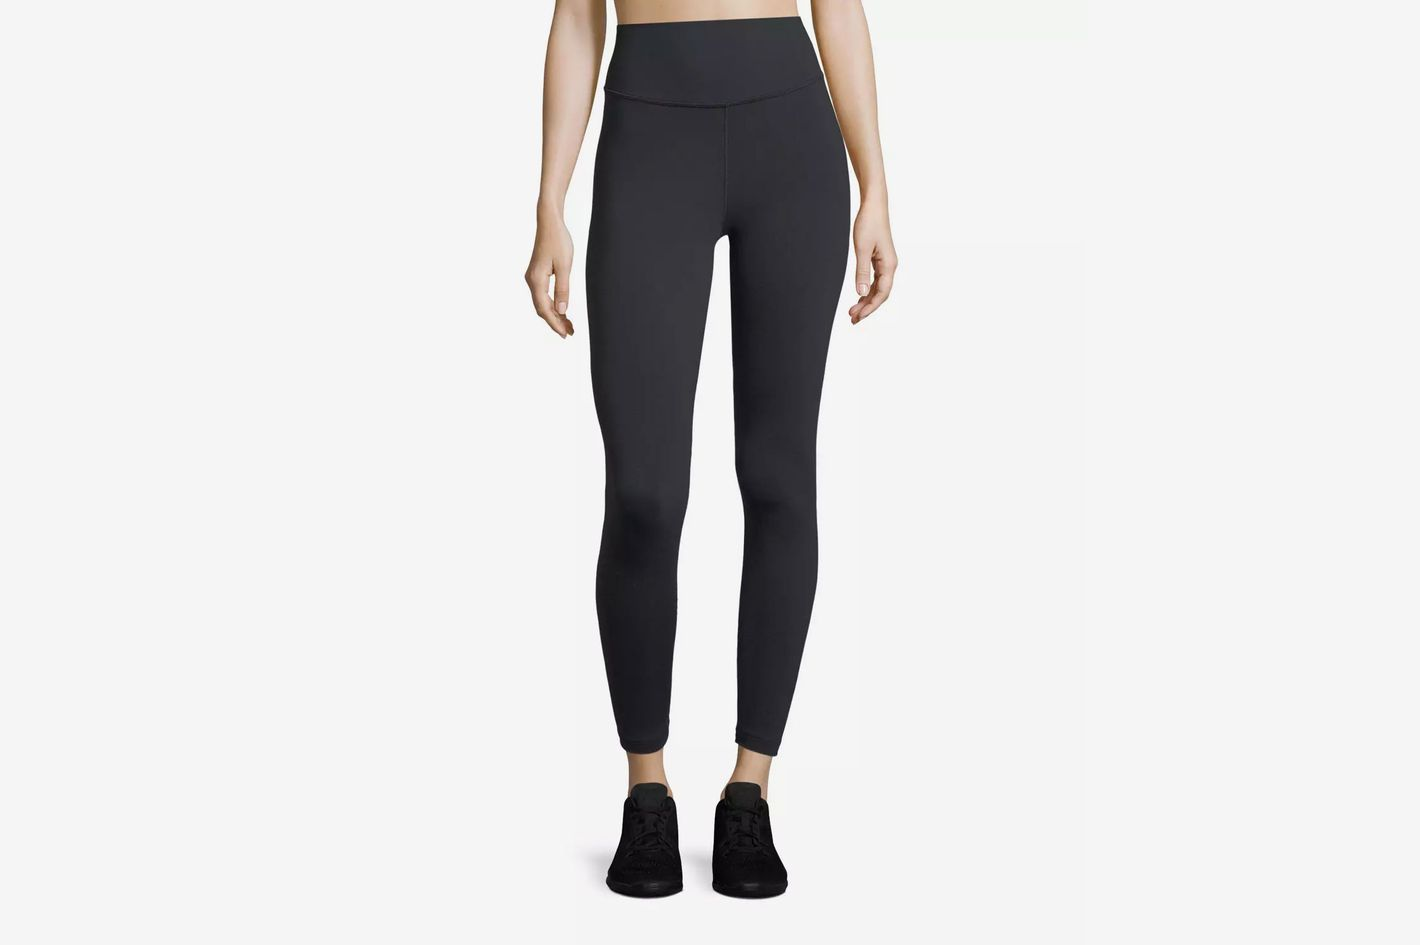 Nike Sculpt High-Rise Training Tights